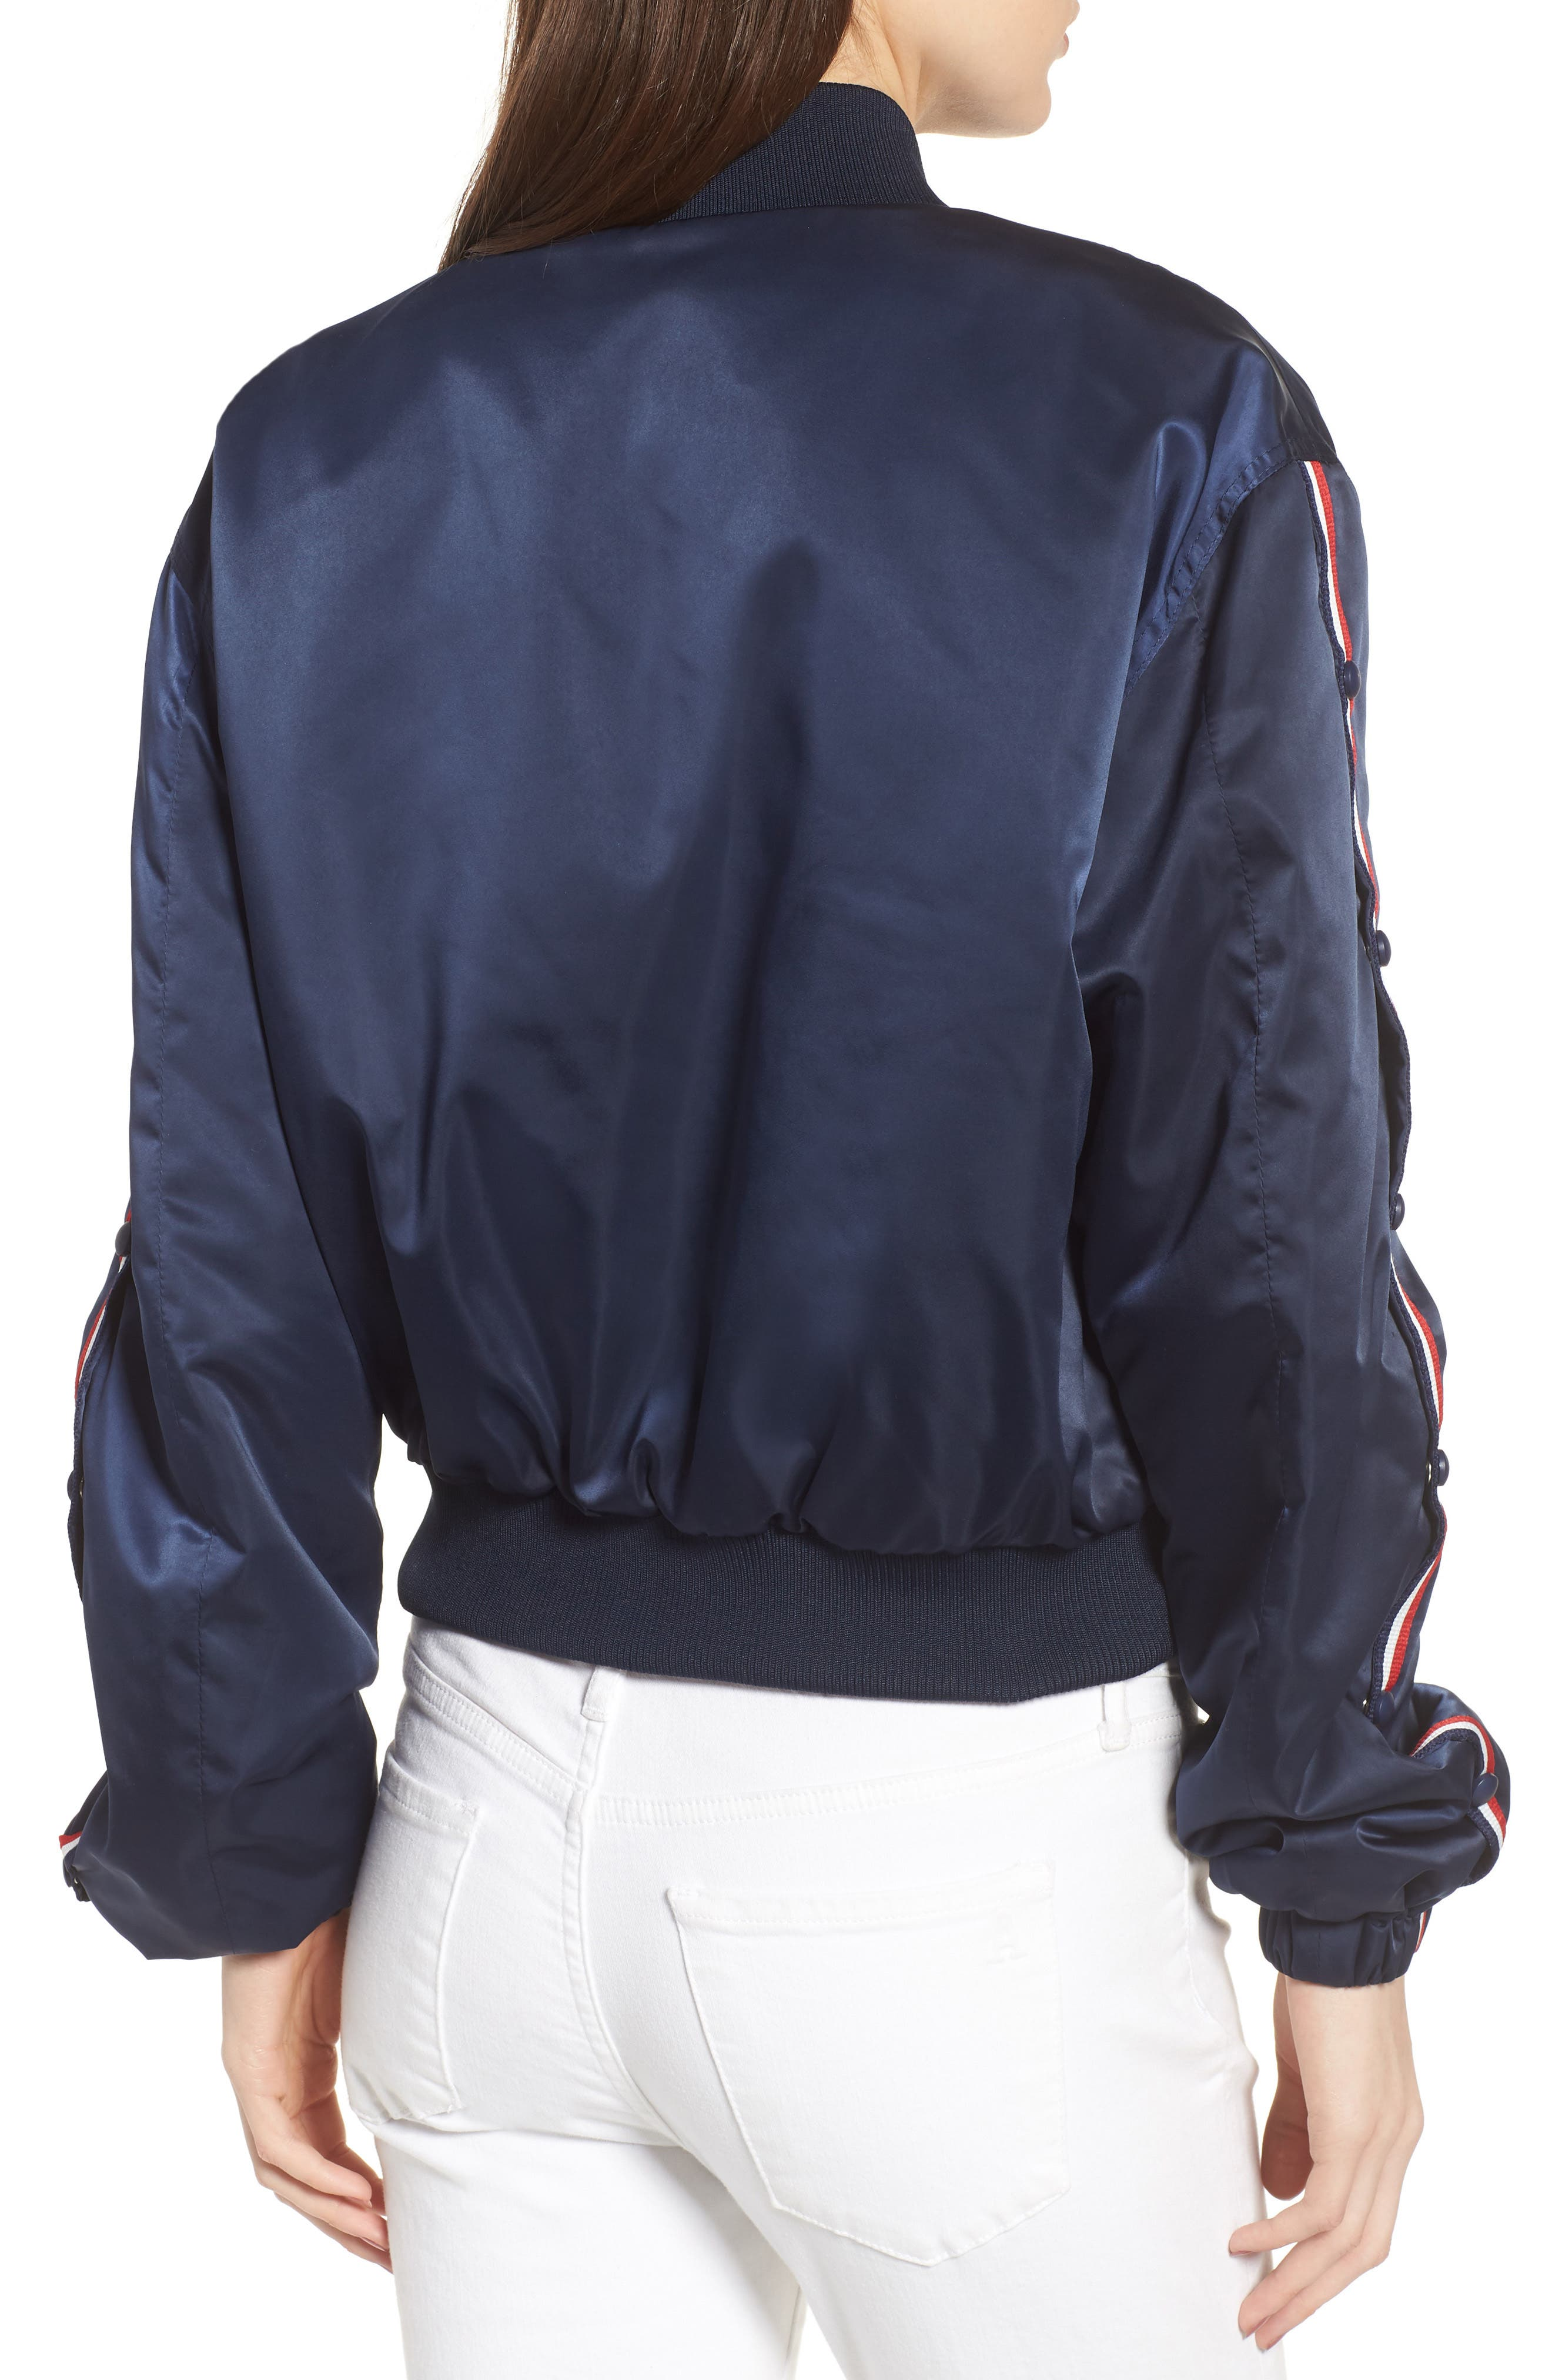 Bomber Jacket,                             Alternate thumbnail 2, color,                             Navy/ Red/ White